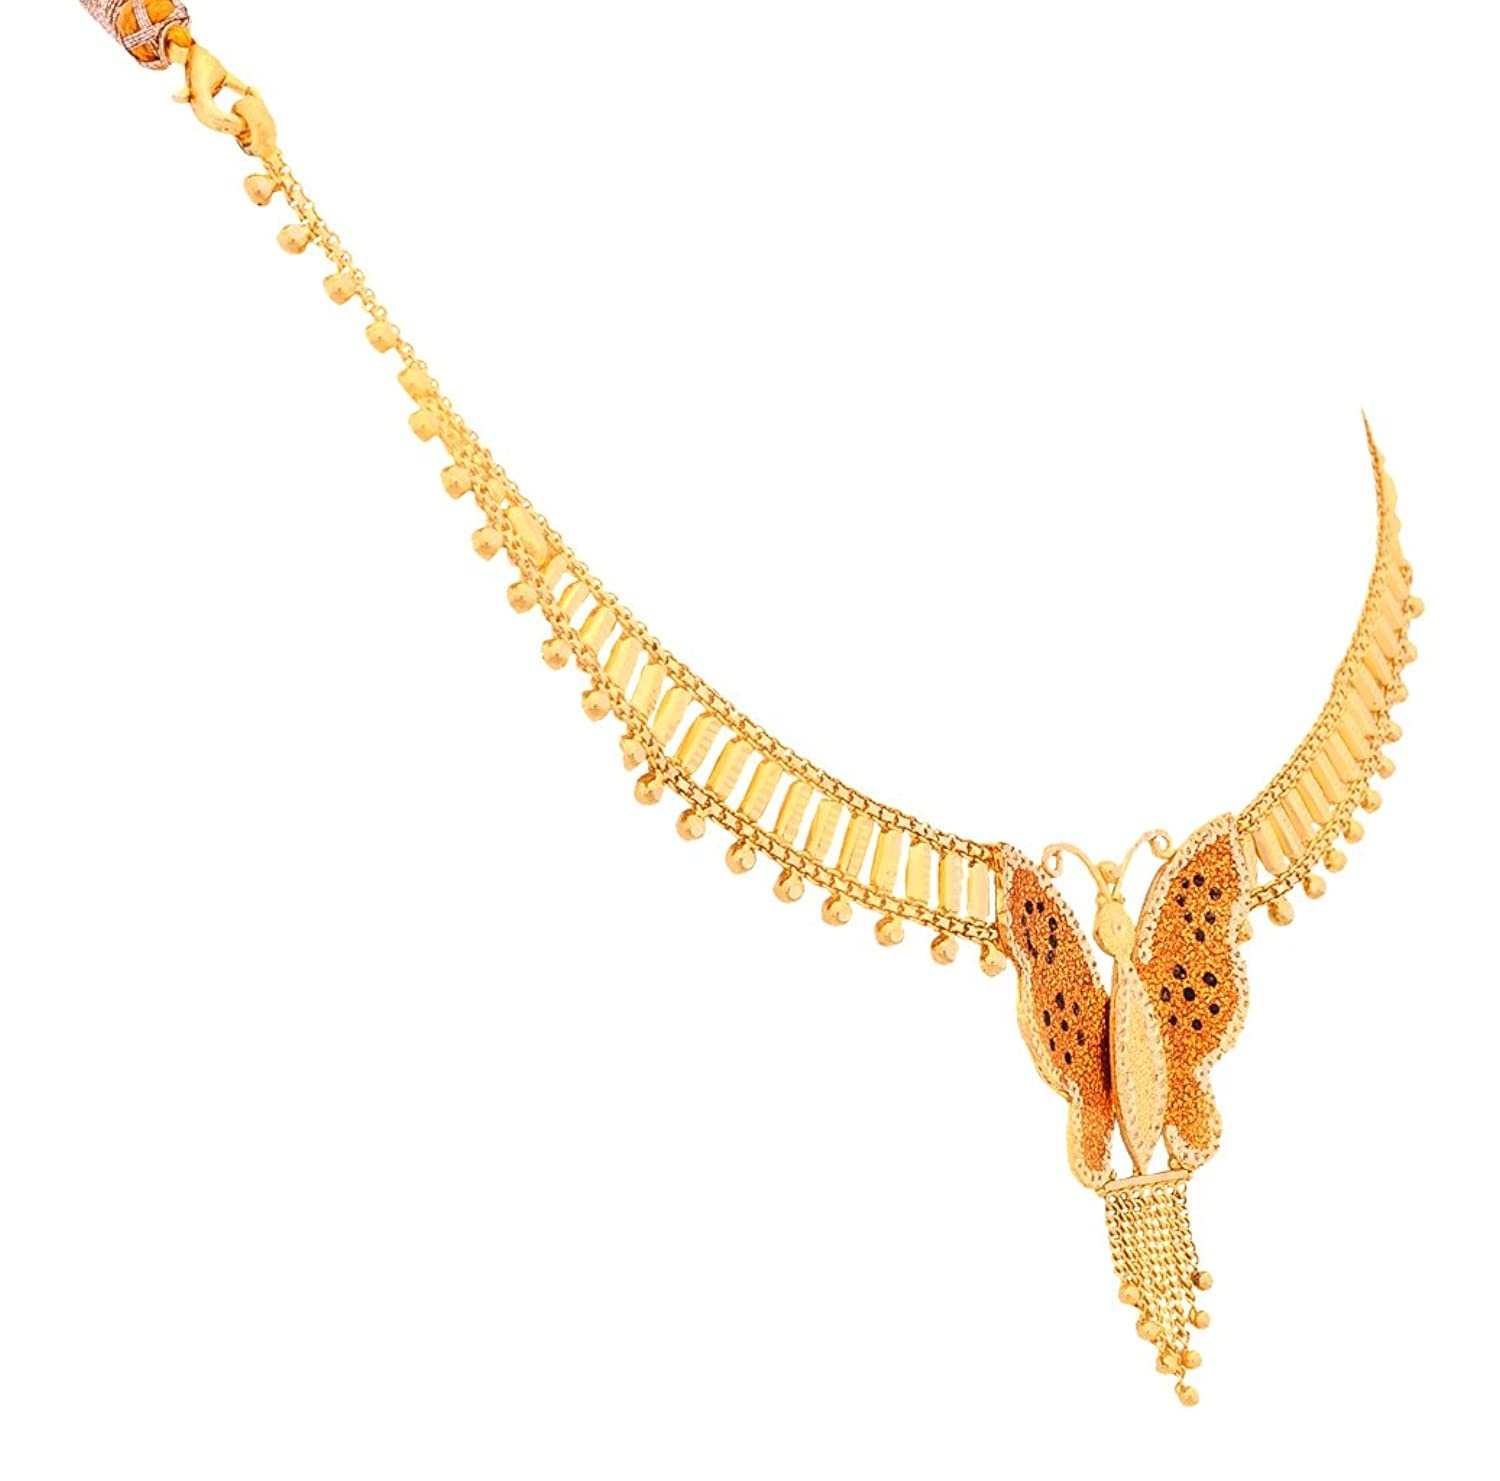 jewellery tanishq buy online tata kt price k p at gold best cliq chain